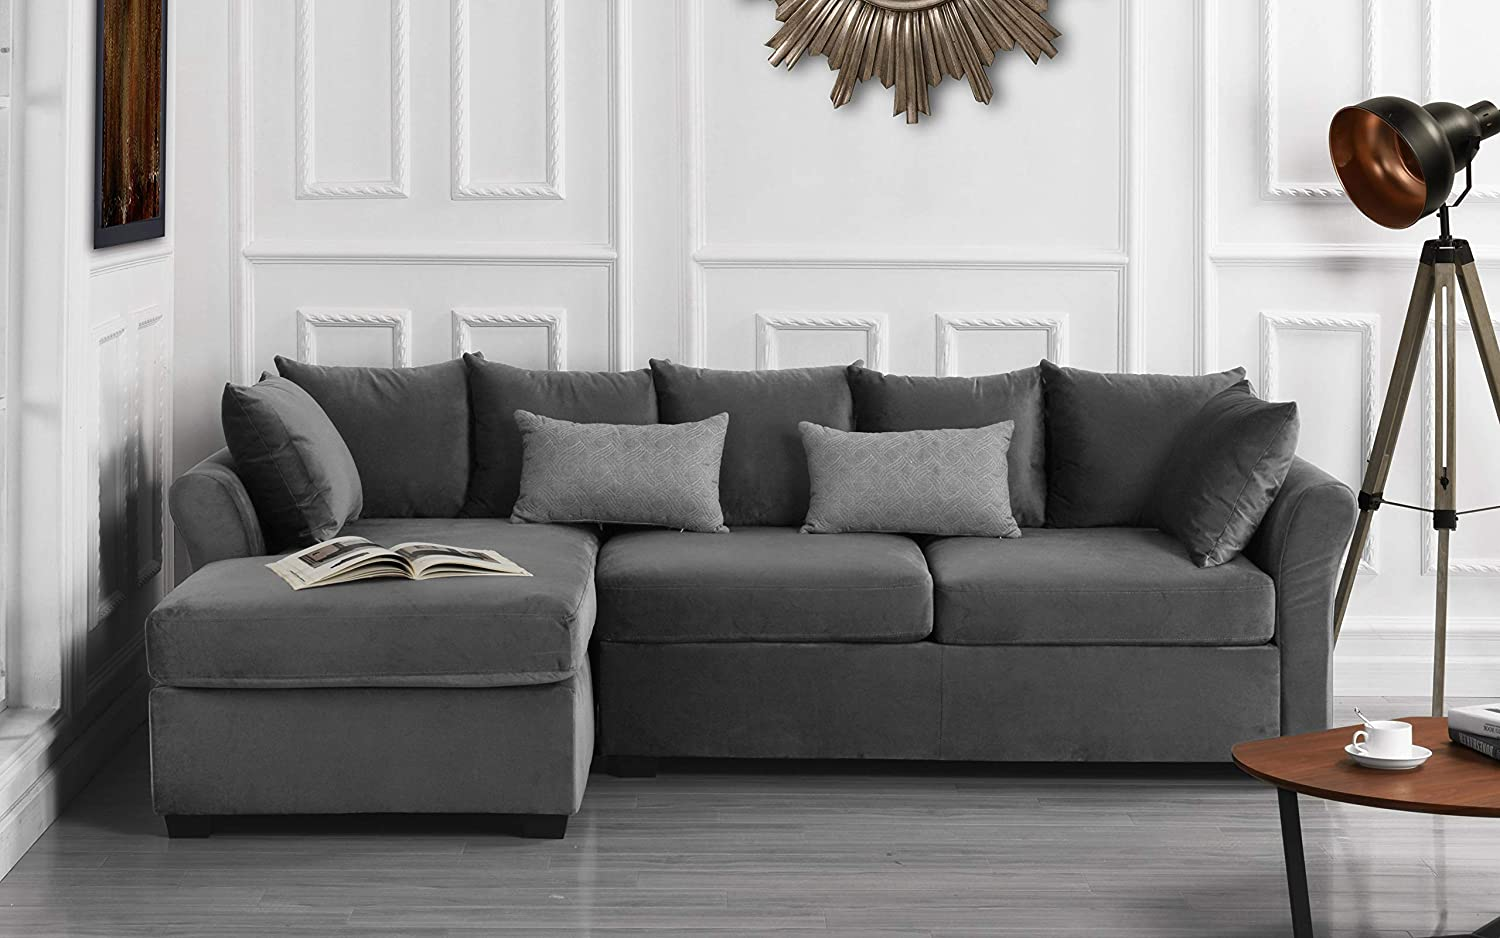 Modern Large Velvet Sectional Sofa, L-Shape Couch with Extra Wide Chaise  Lounge (Light Grey)